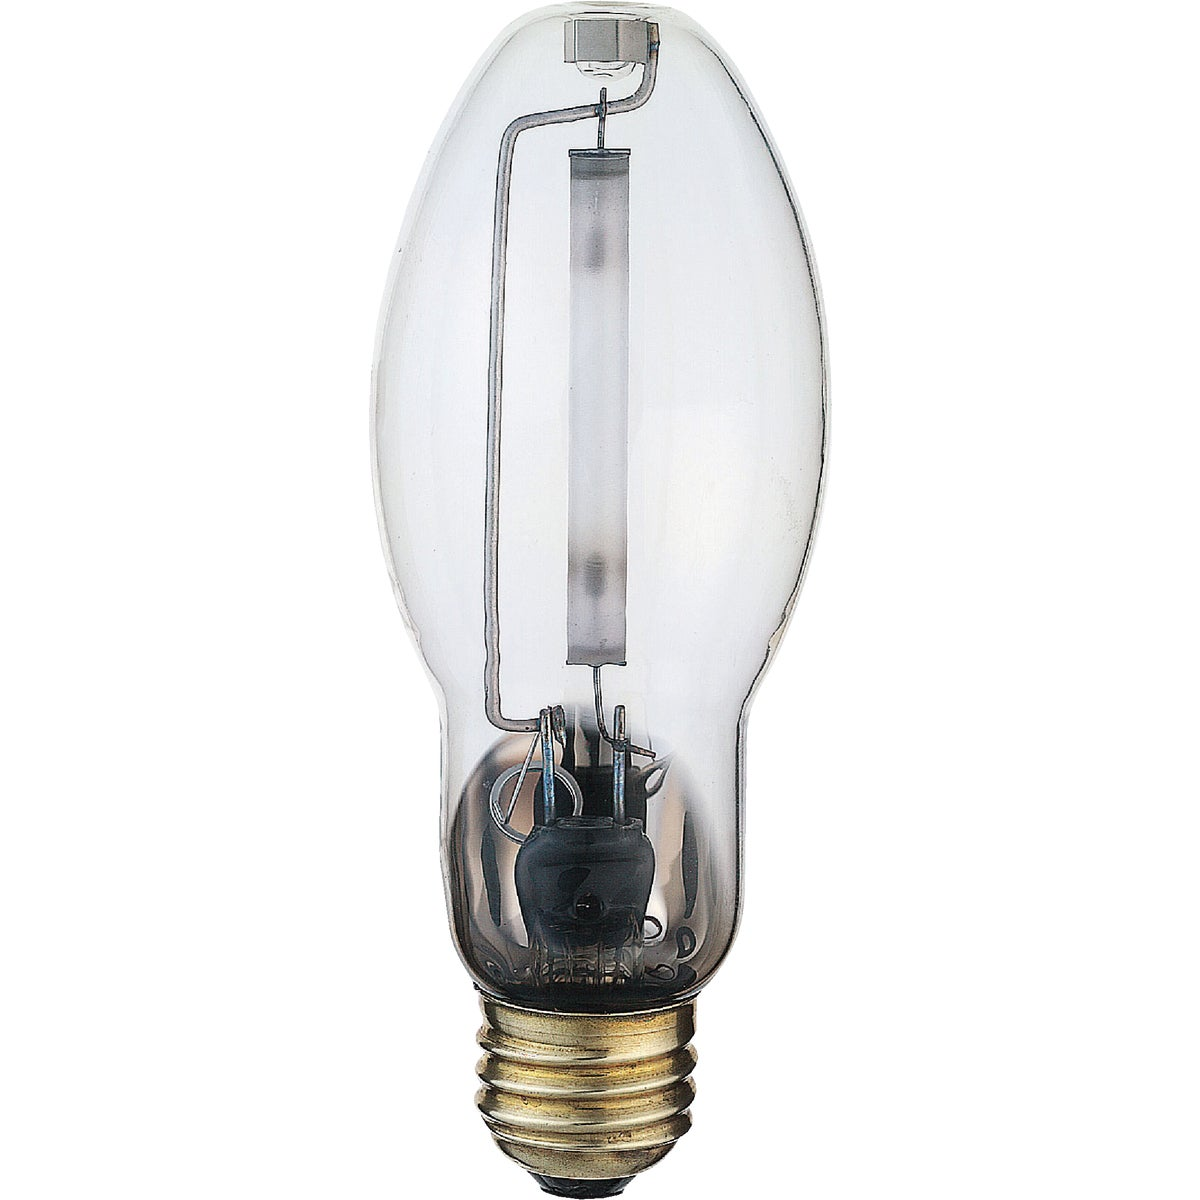 100W HP SODIUM BULB - 26423 LU100/MED/CP by G E Lighting Incom